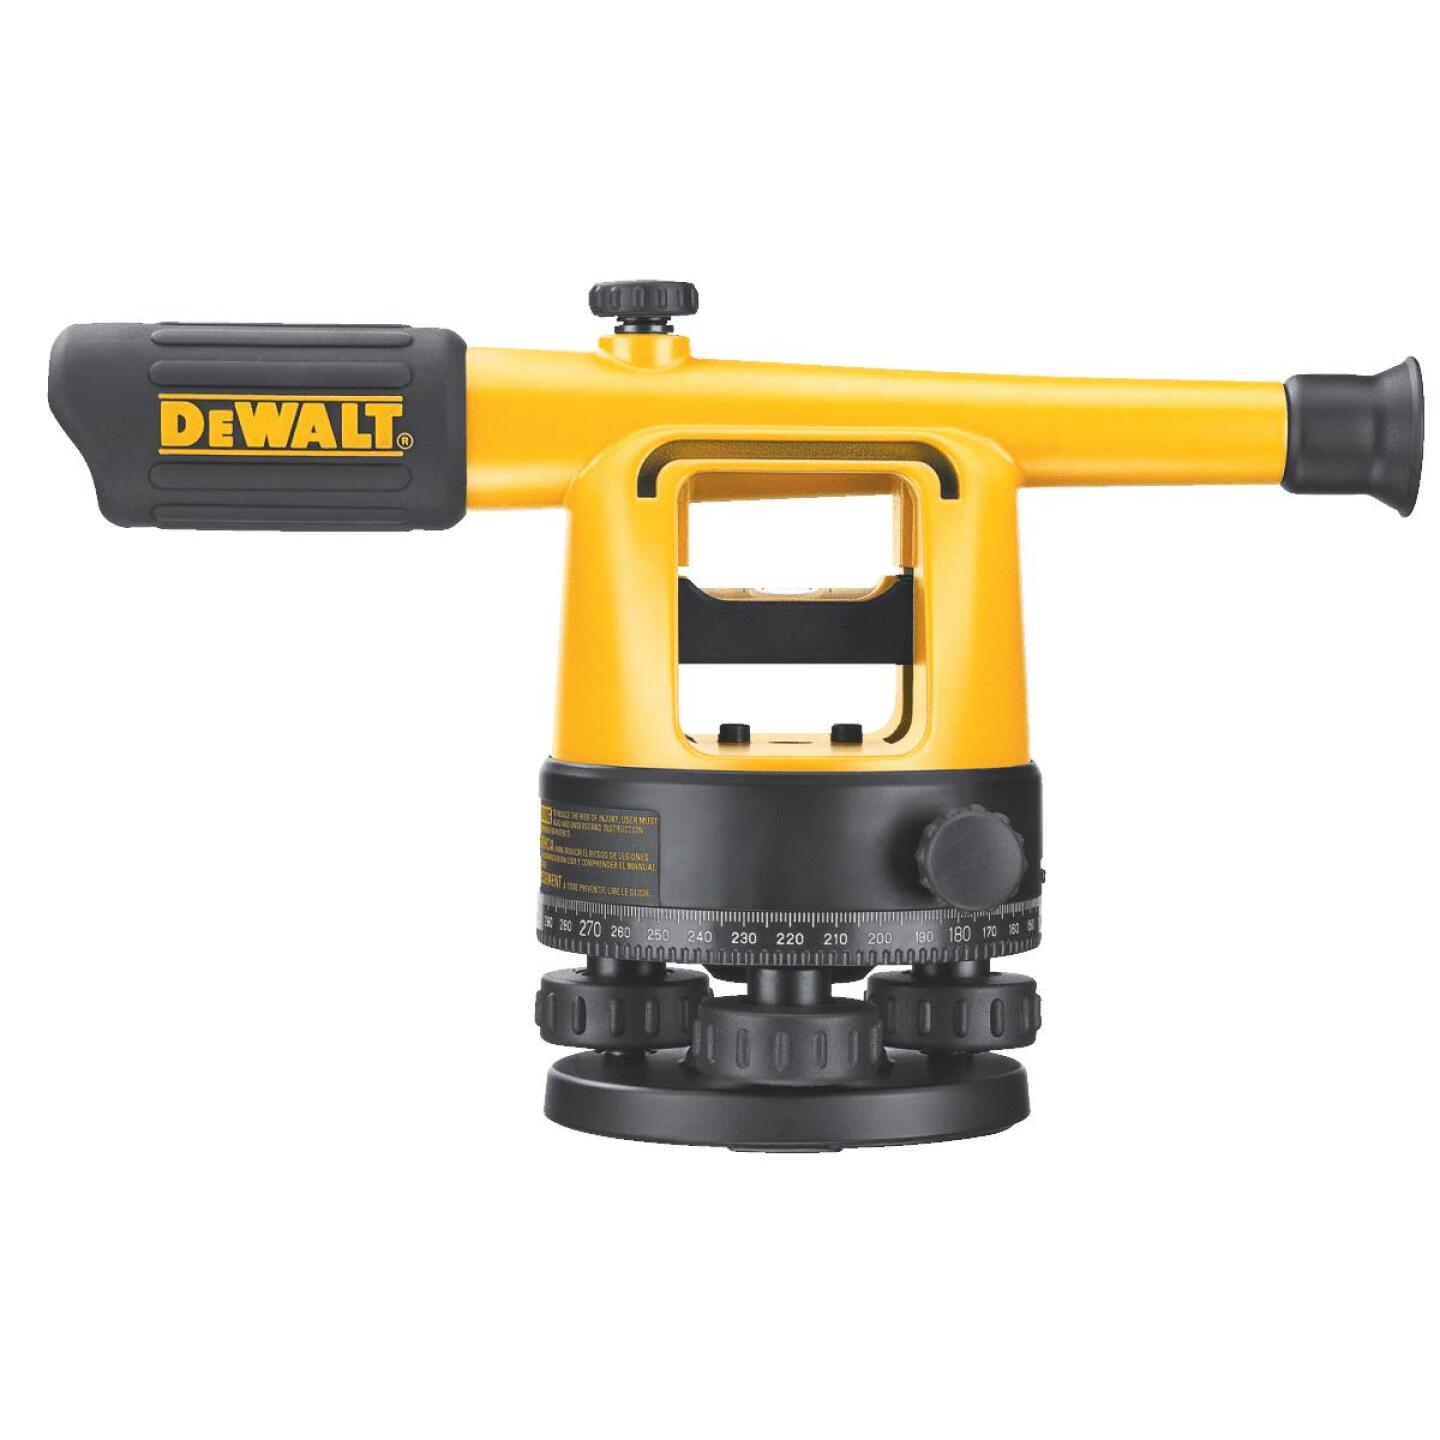 Dewalt 20x Magnifying Manual Sight Level Image 3